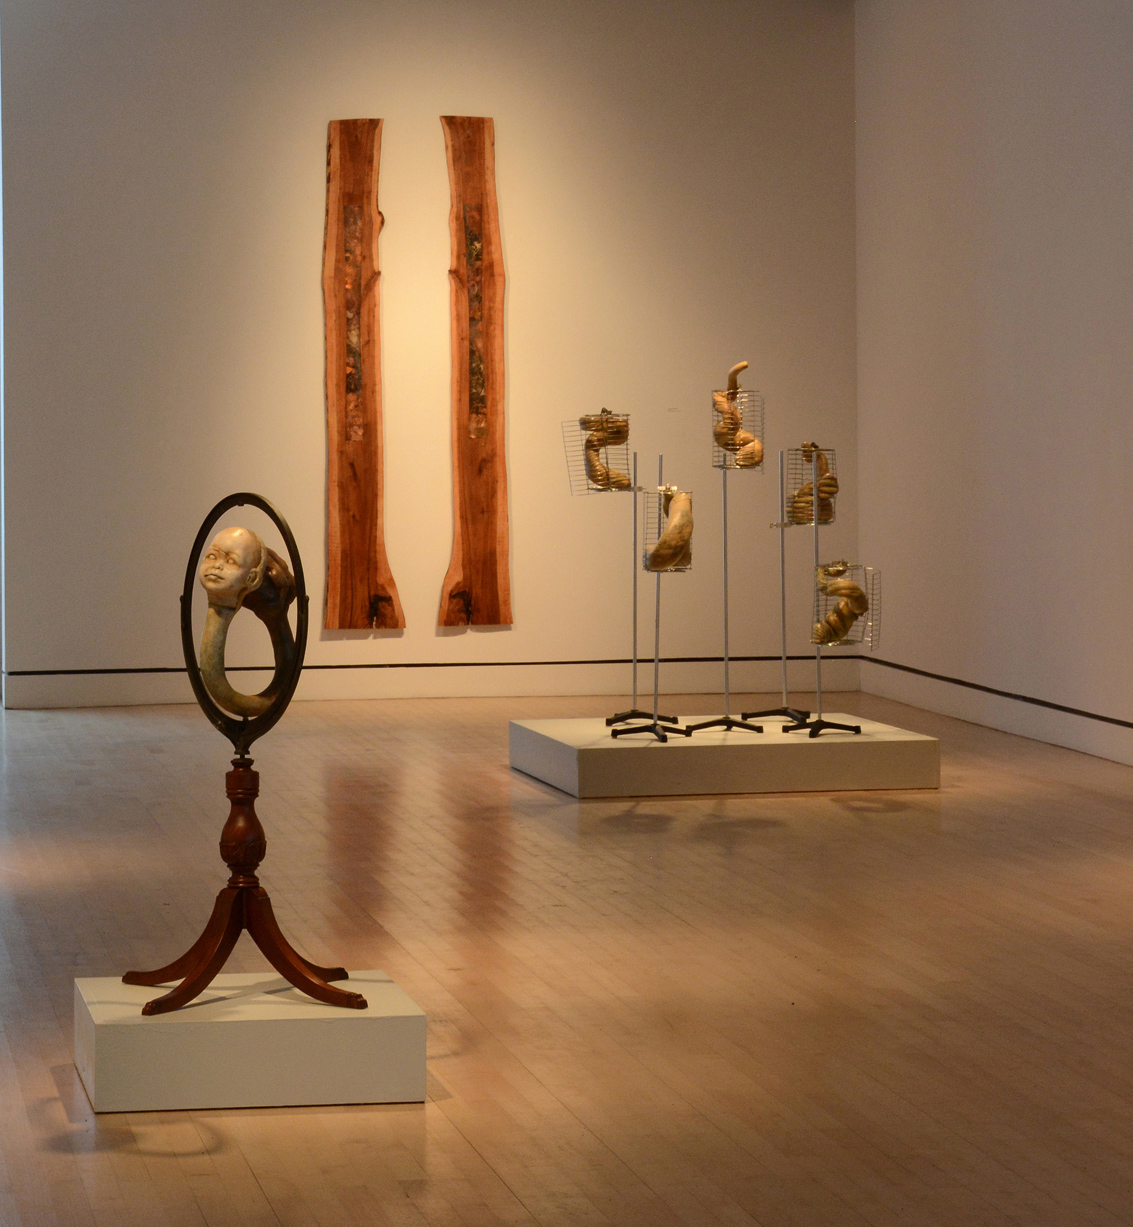 Work in Lord Hall Gallery, University of Maine, Exhibition